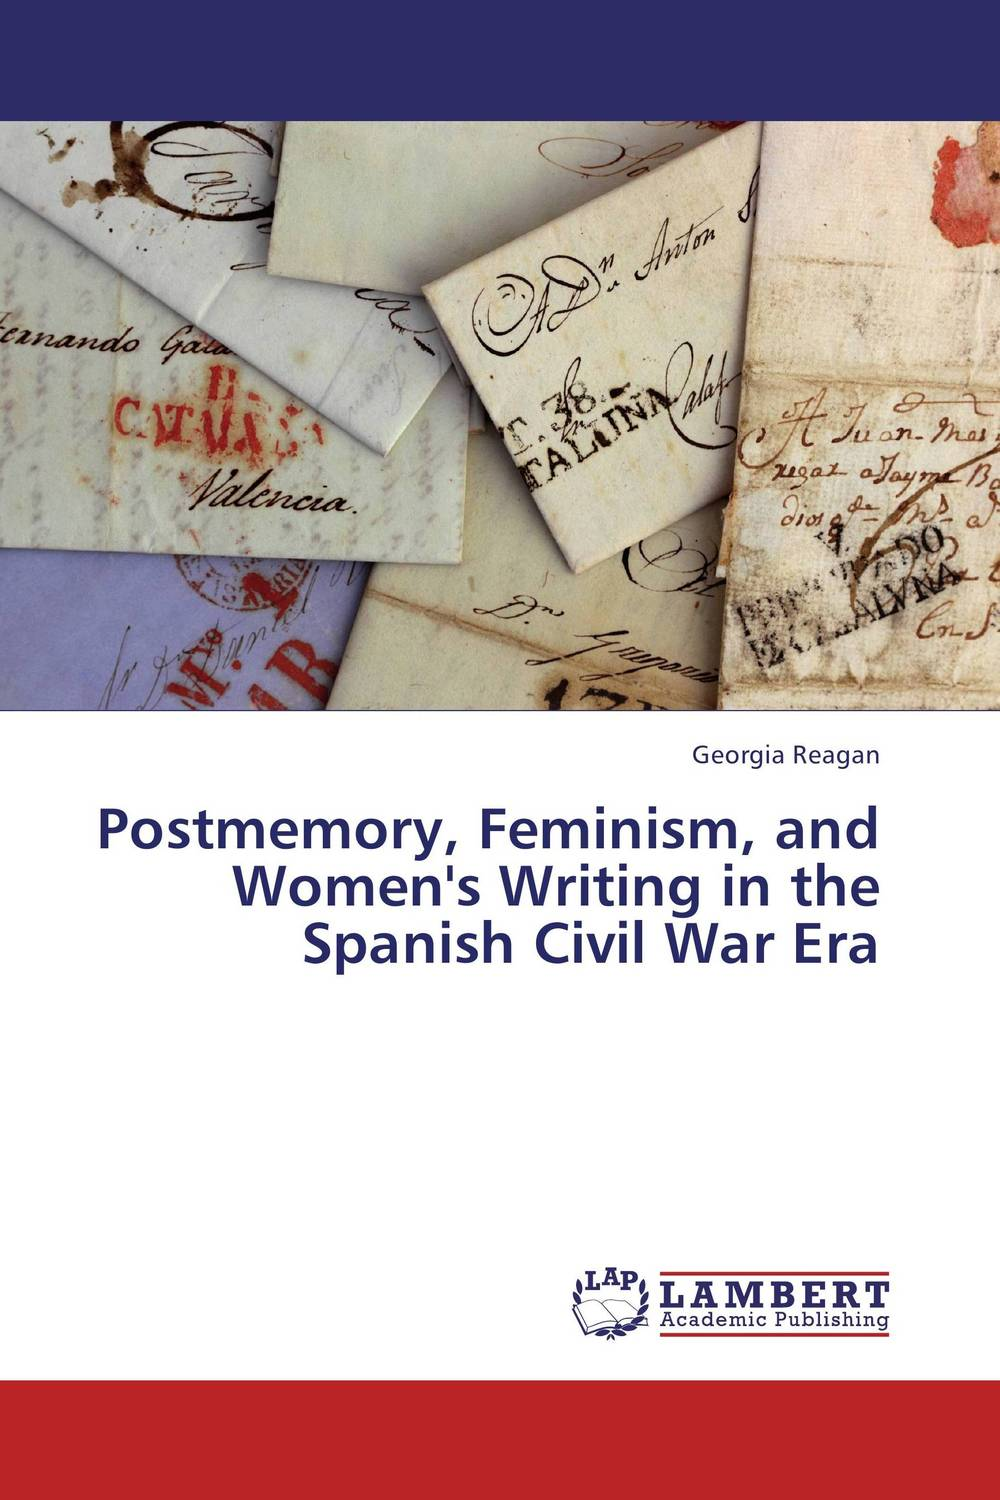 Postmemory, Feminism, and Women's Writing in the Spanish Civil War Era war and women